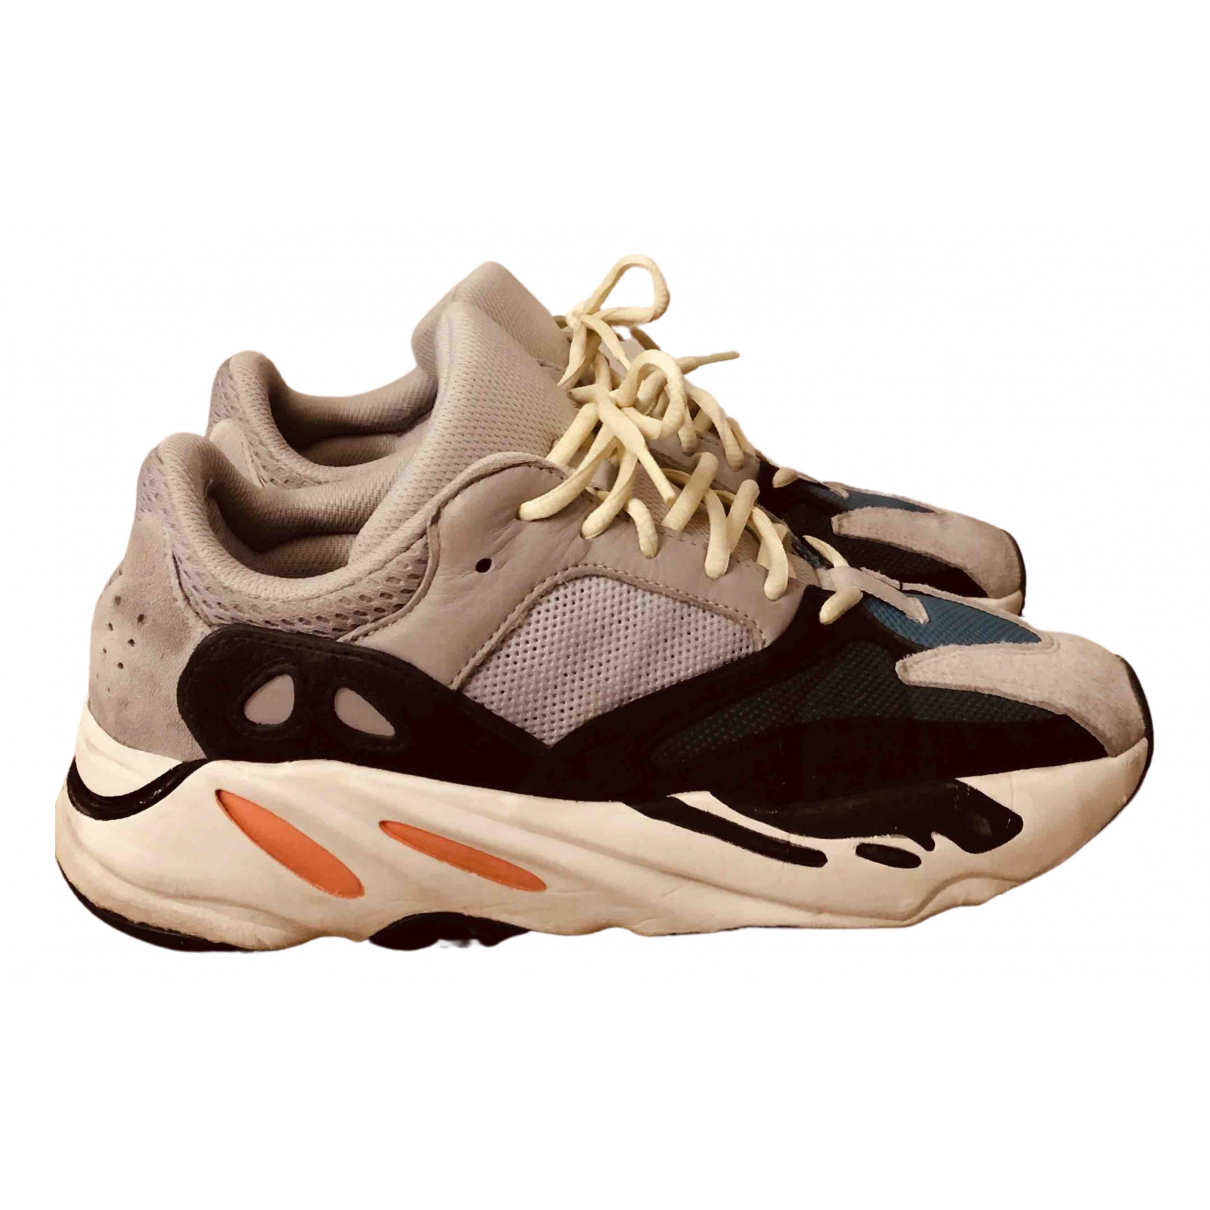 Yeezy X Adidas - Baskets Boost 700 V1  pour homme - gris